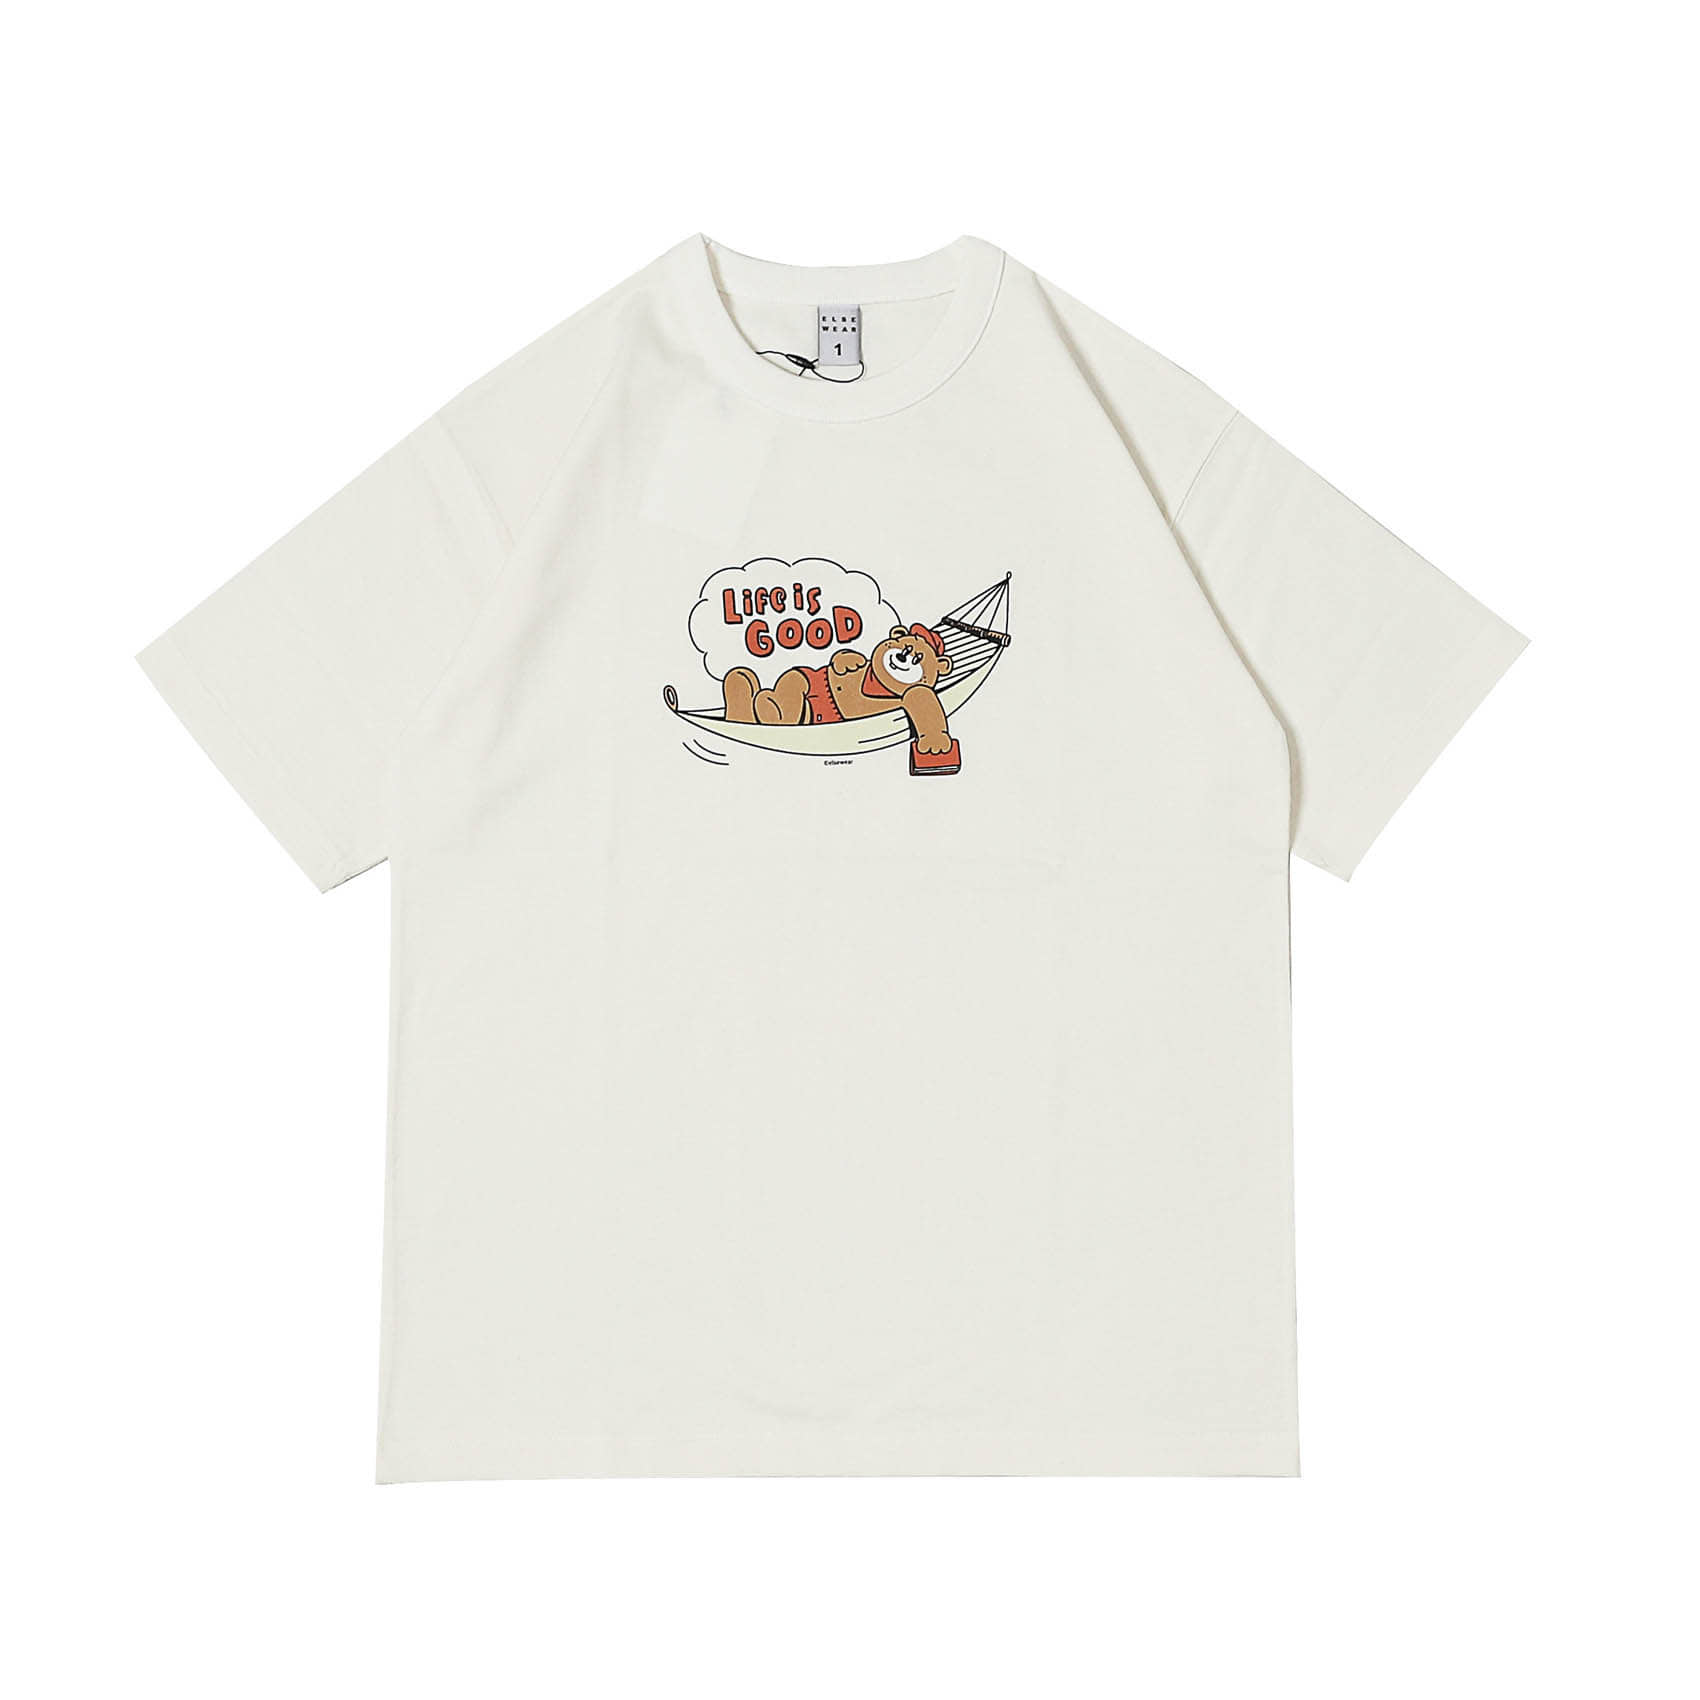 S/S PRINTED TEE - LIFE IS GOOD